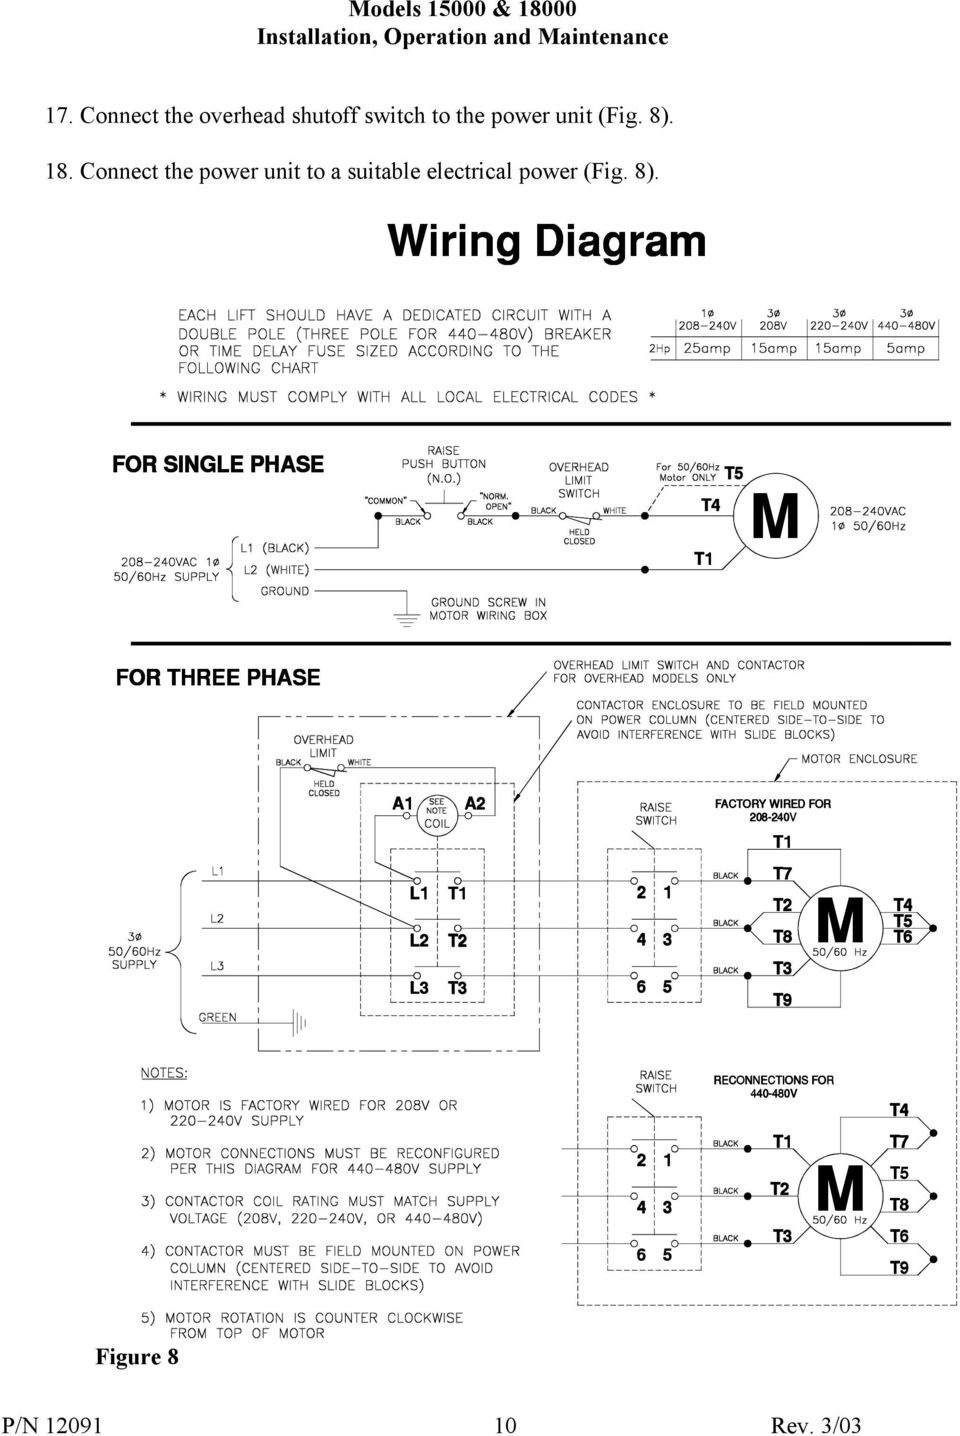 Challenger Lifts Inc Models Pdf Single Phase 220 Wiring Diagram For T5 T4 T1 M Three A1 A2 Factory Wired